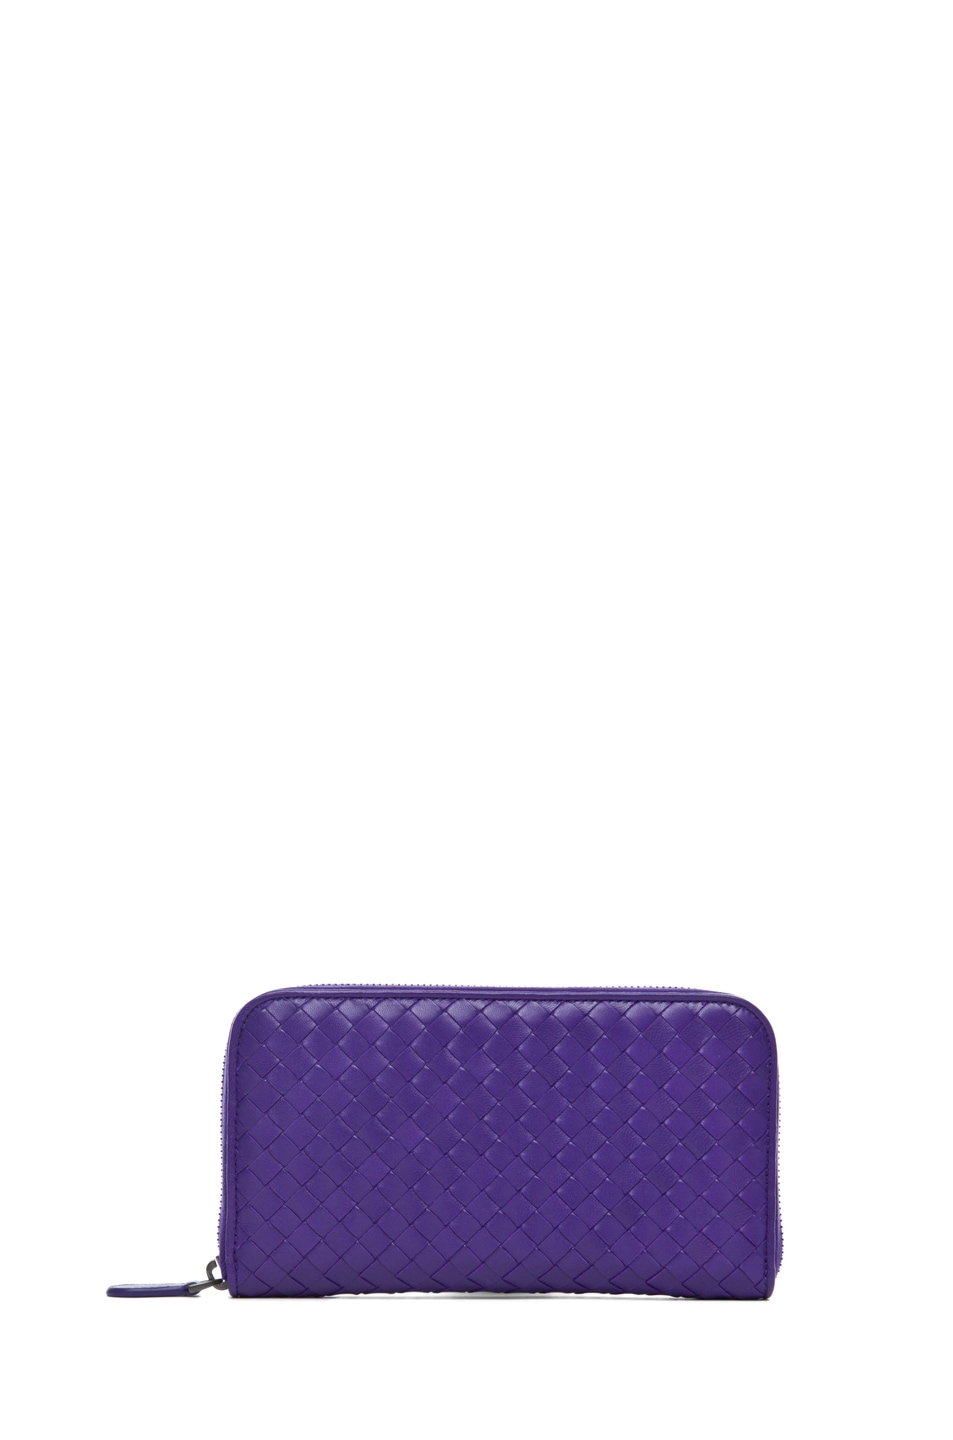 Image 1 of Bottega Veneta Zip Around Wallet in Violet